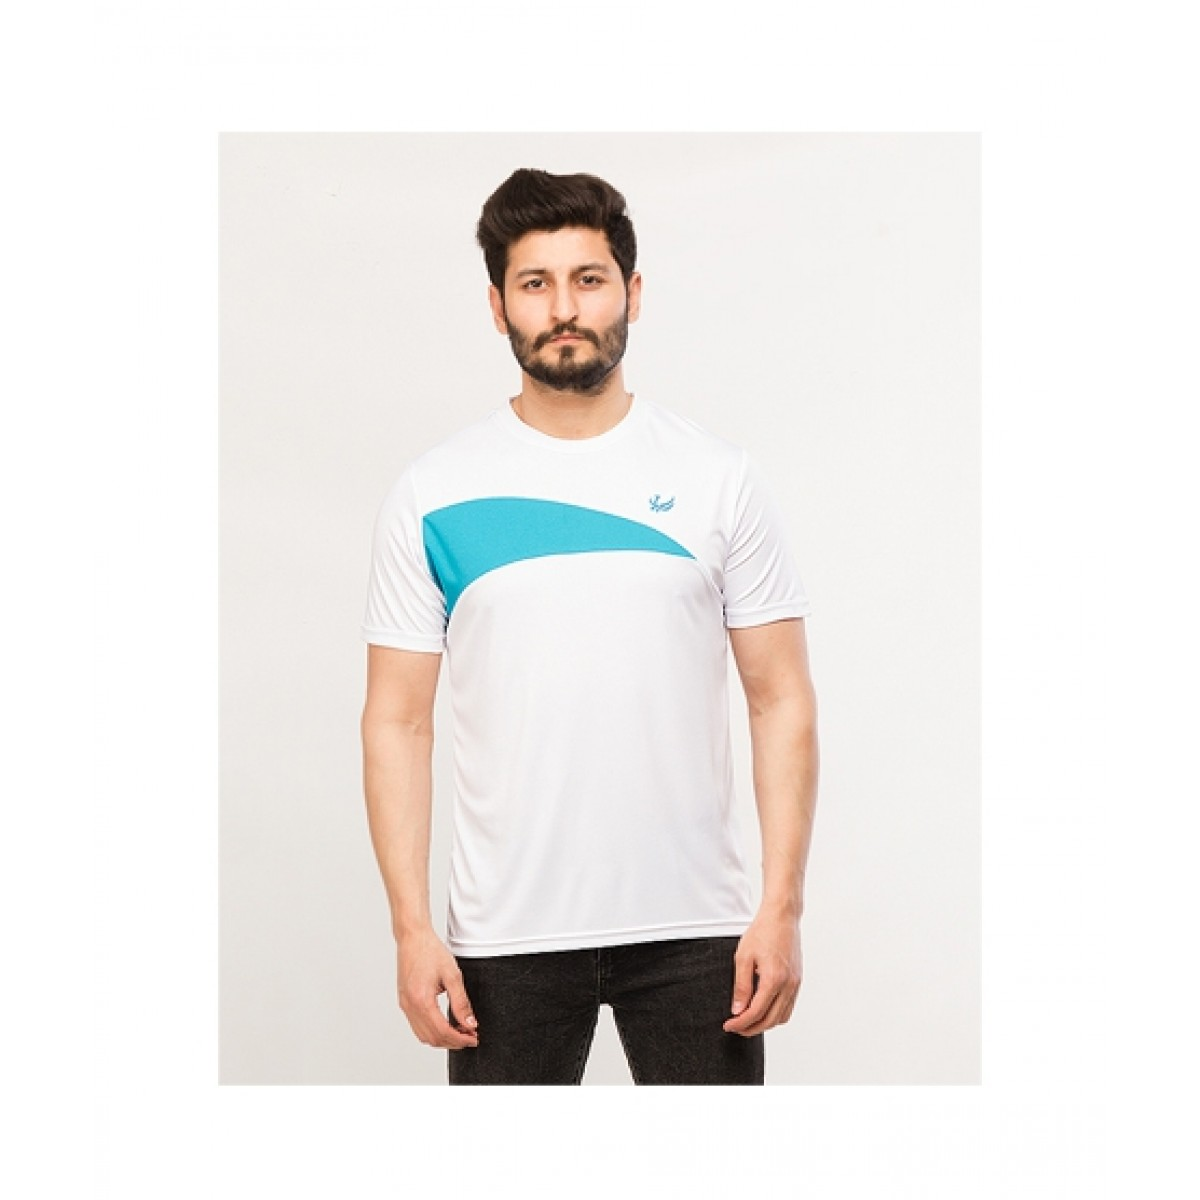 647b3adcdc6 Oxford T-Shirt For Men Price in Pakistan